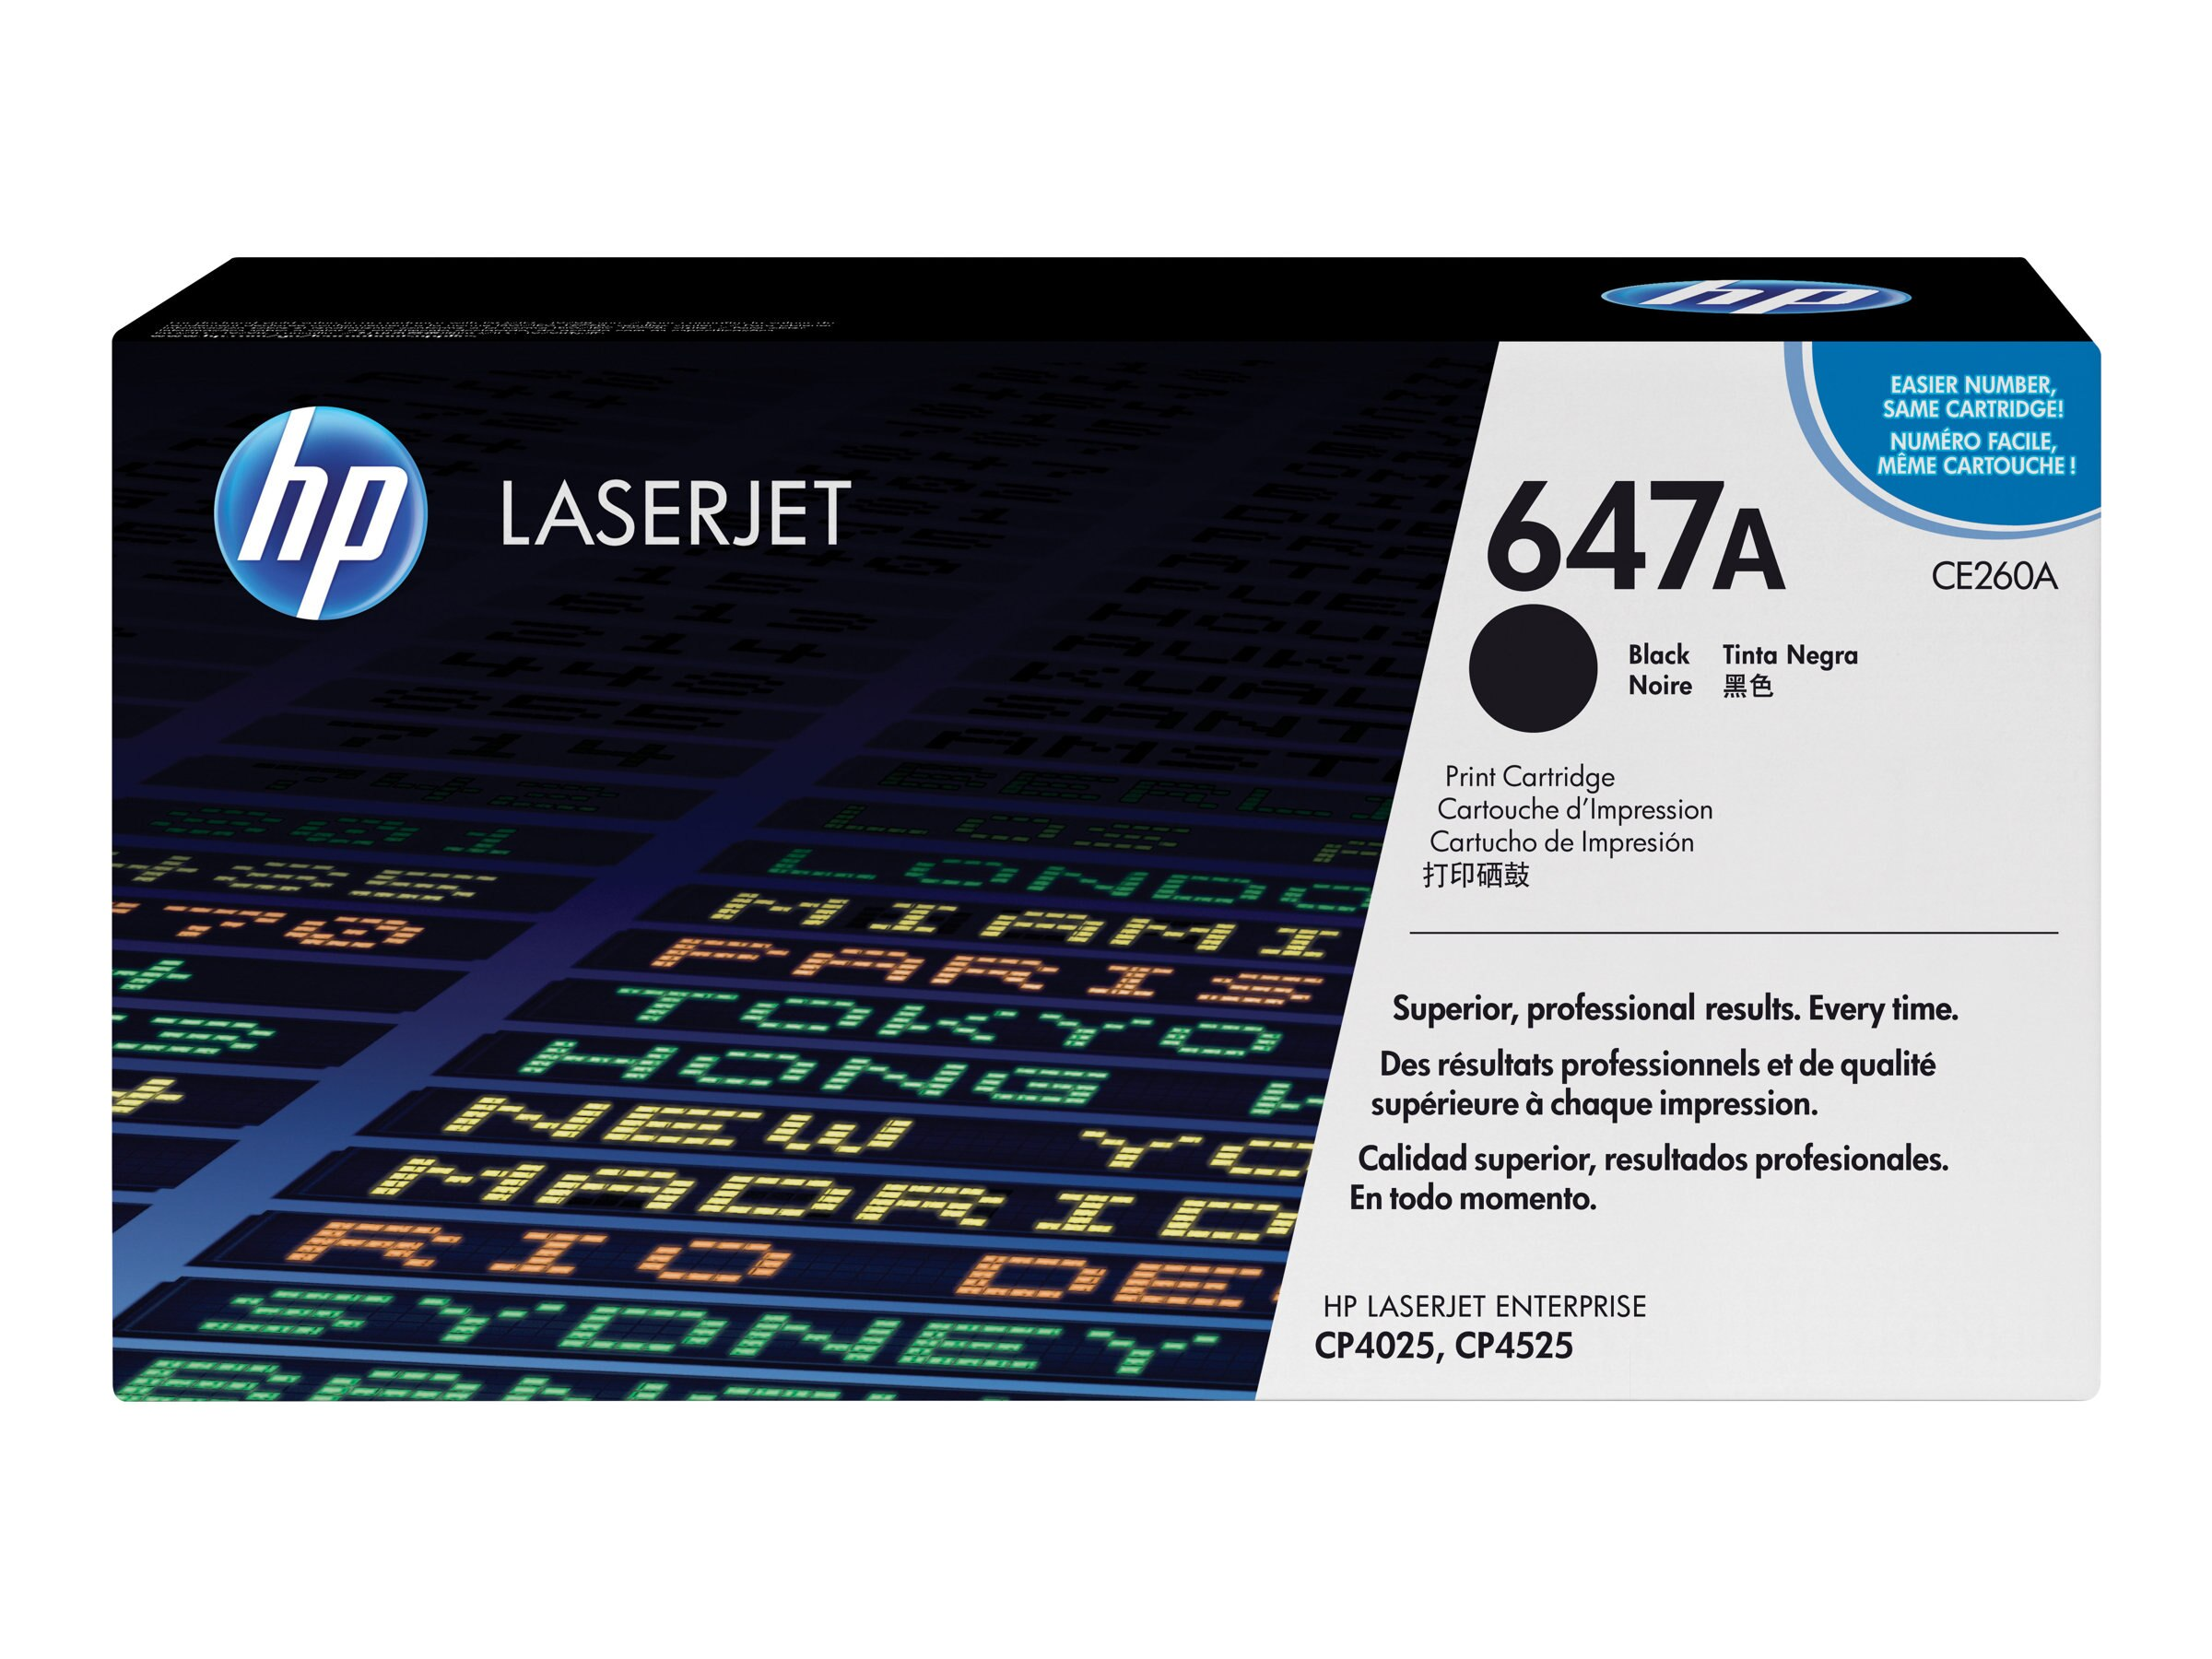 HP 647A (CE260A) Black Original LaserJet Toner Cartridge for HP Color LaserJet CP4025 & CP4525 Series